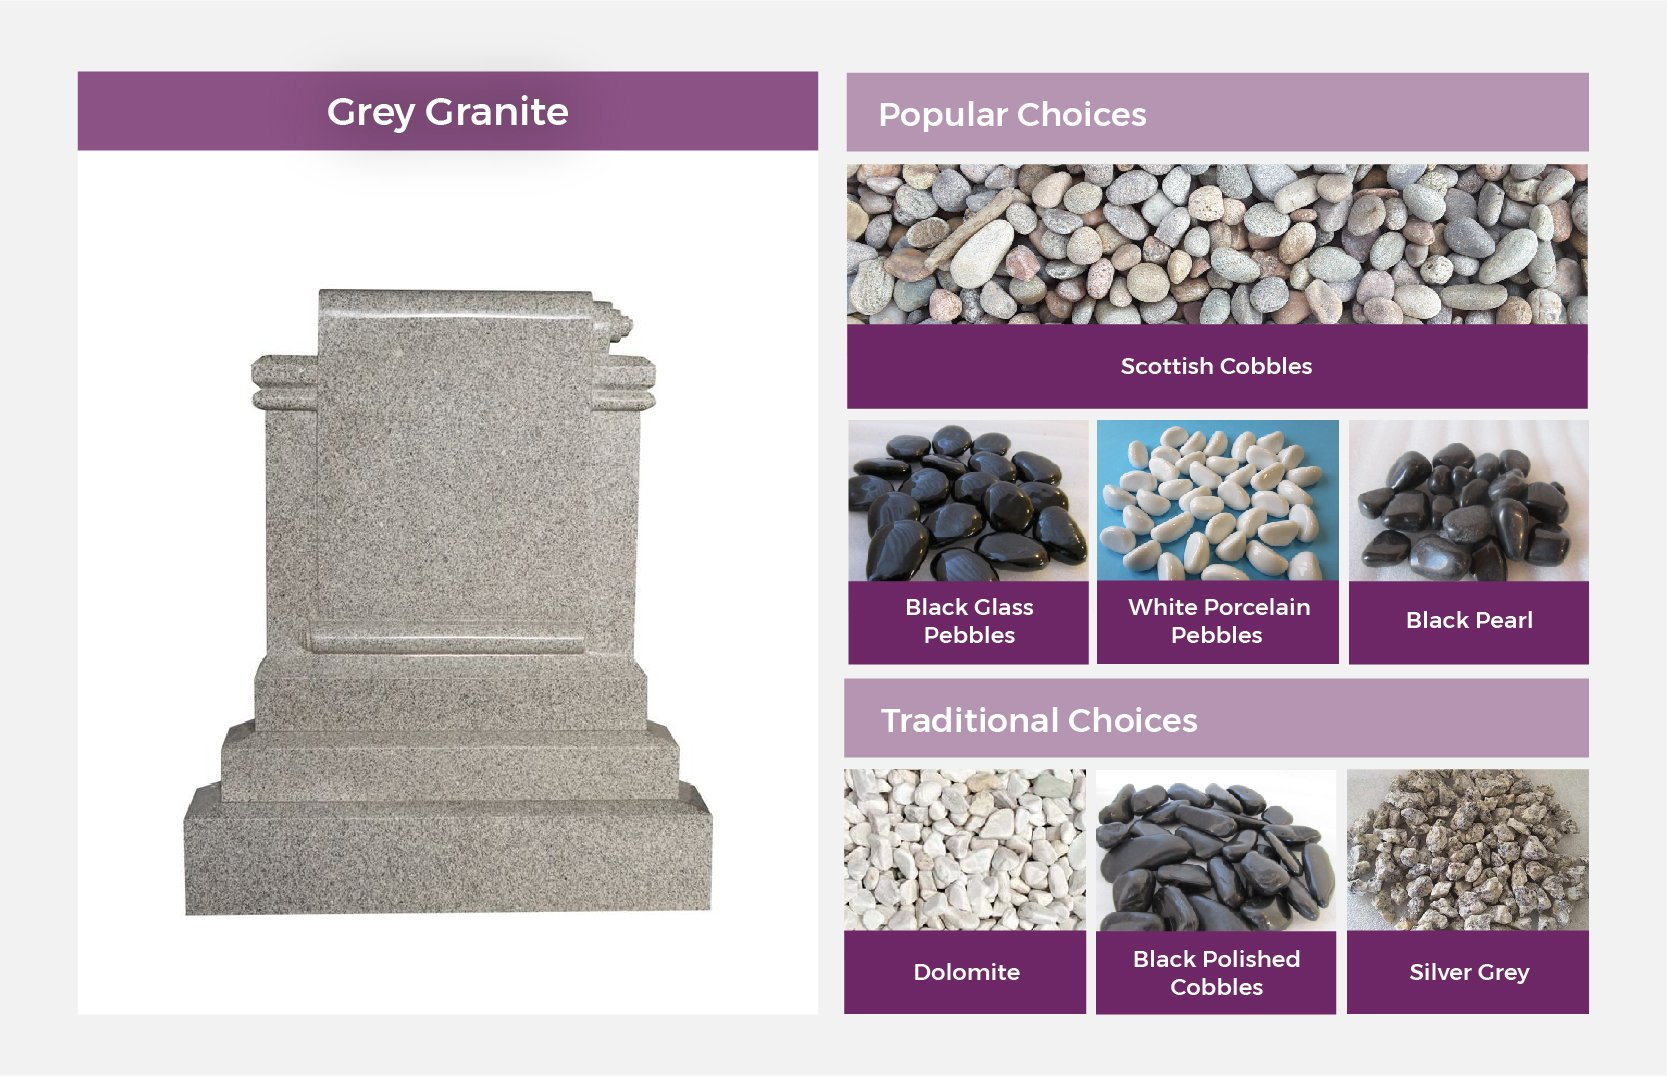 Grey Granite Headstone Pairing Stones